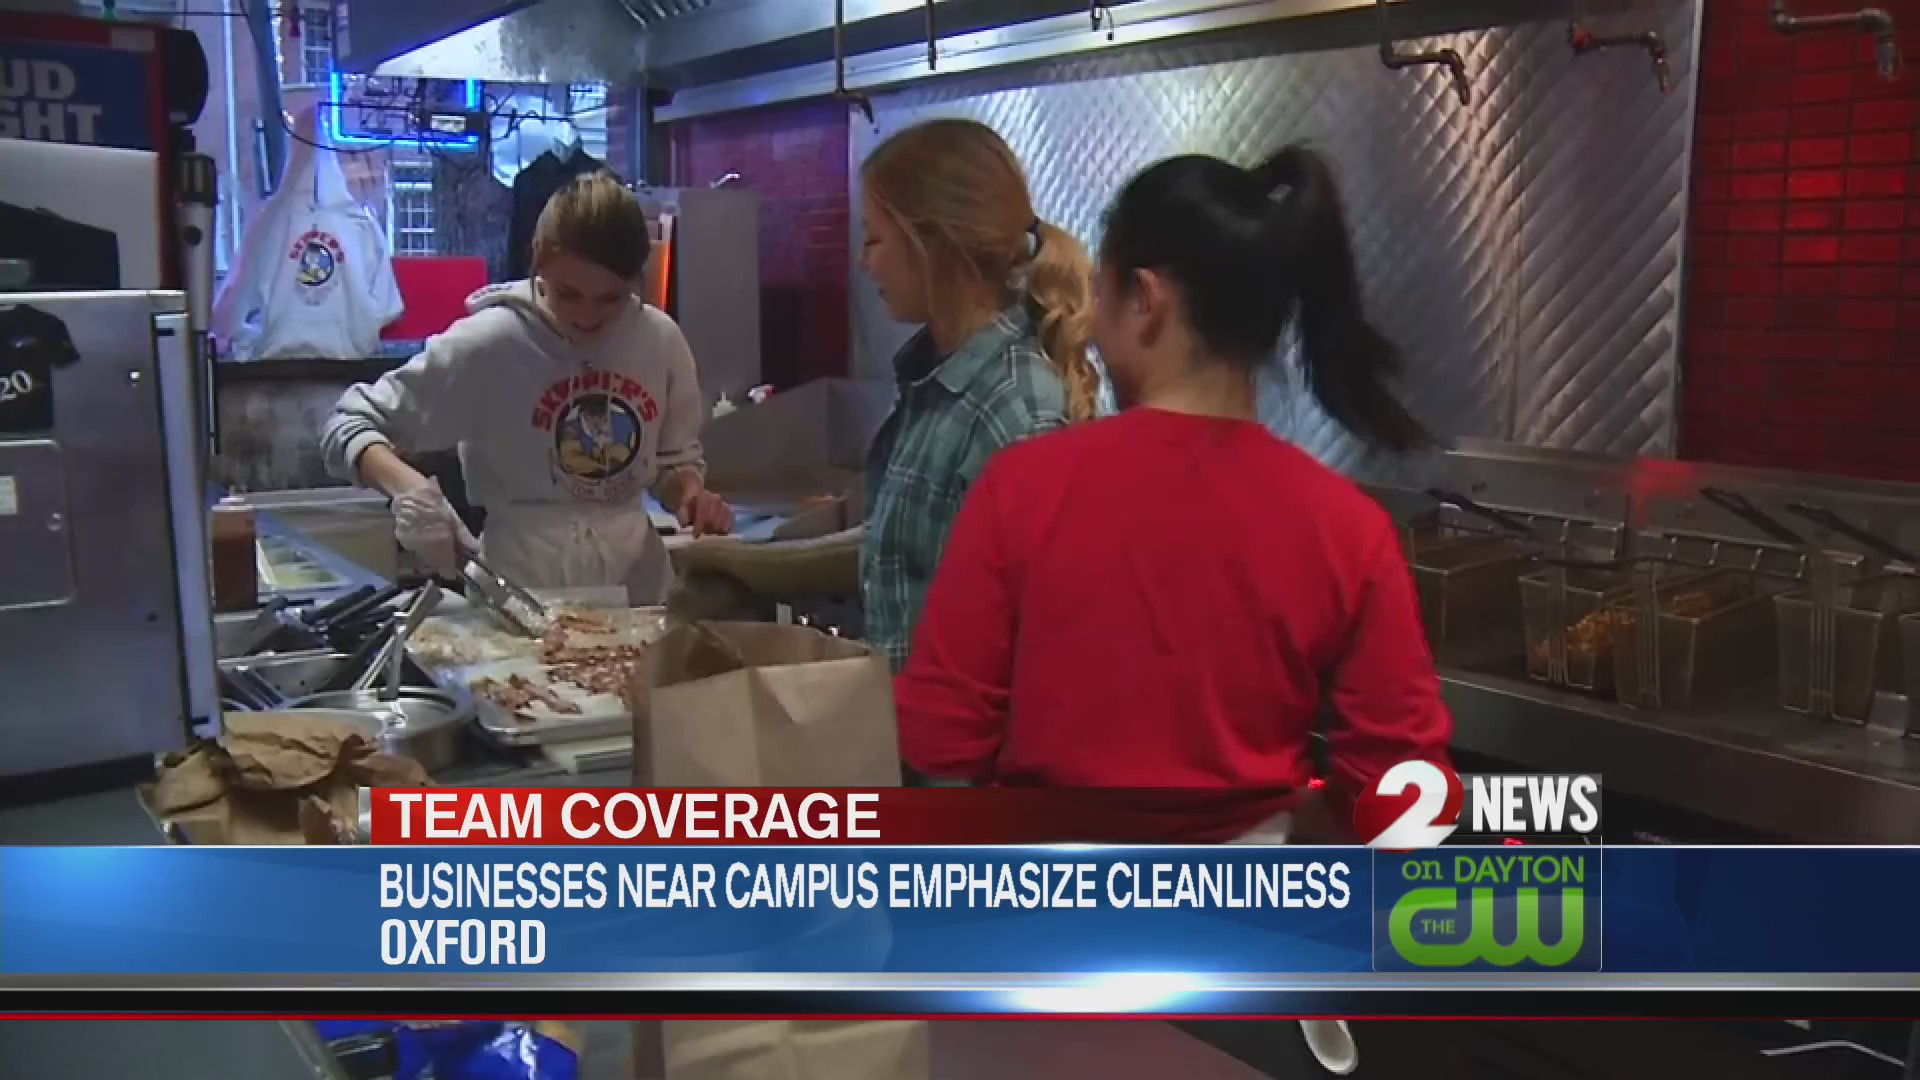 Business near campus emphasize cleanliness